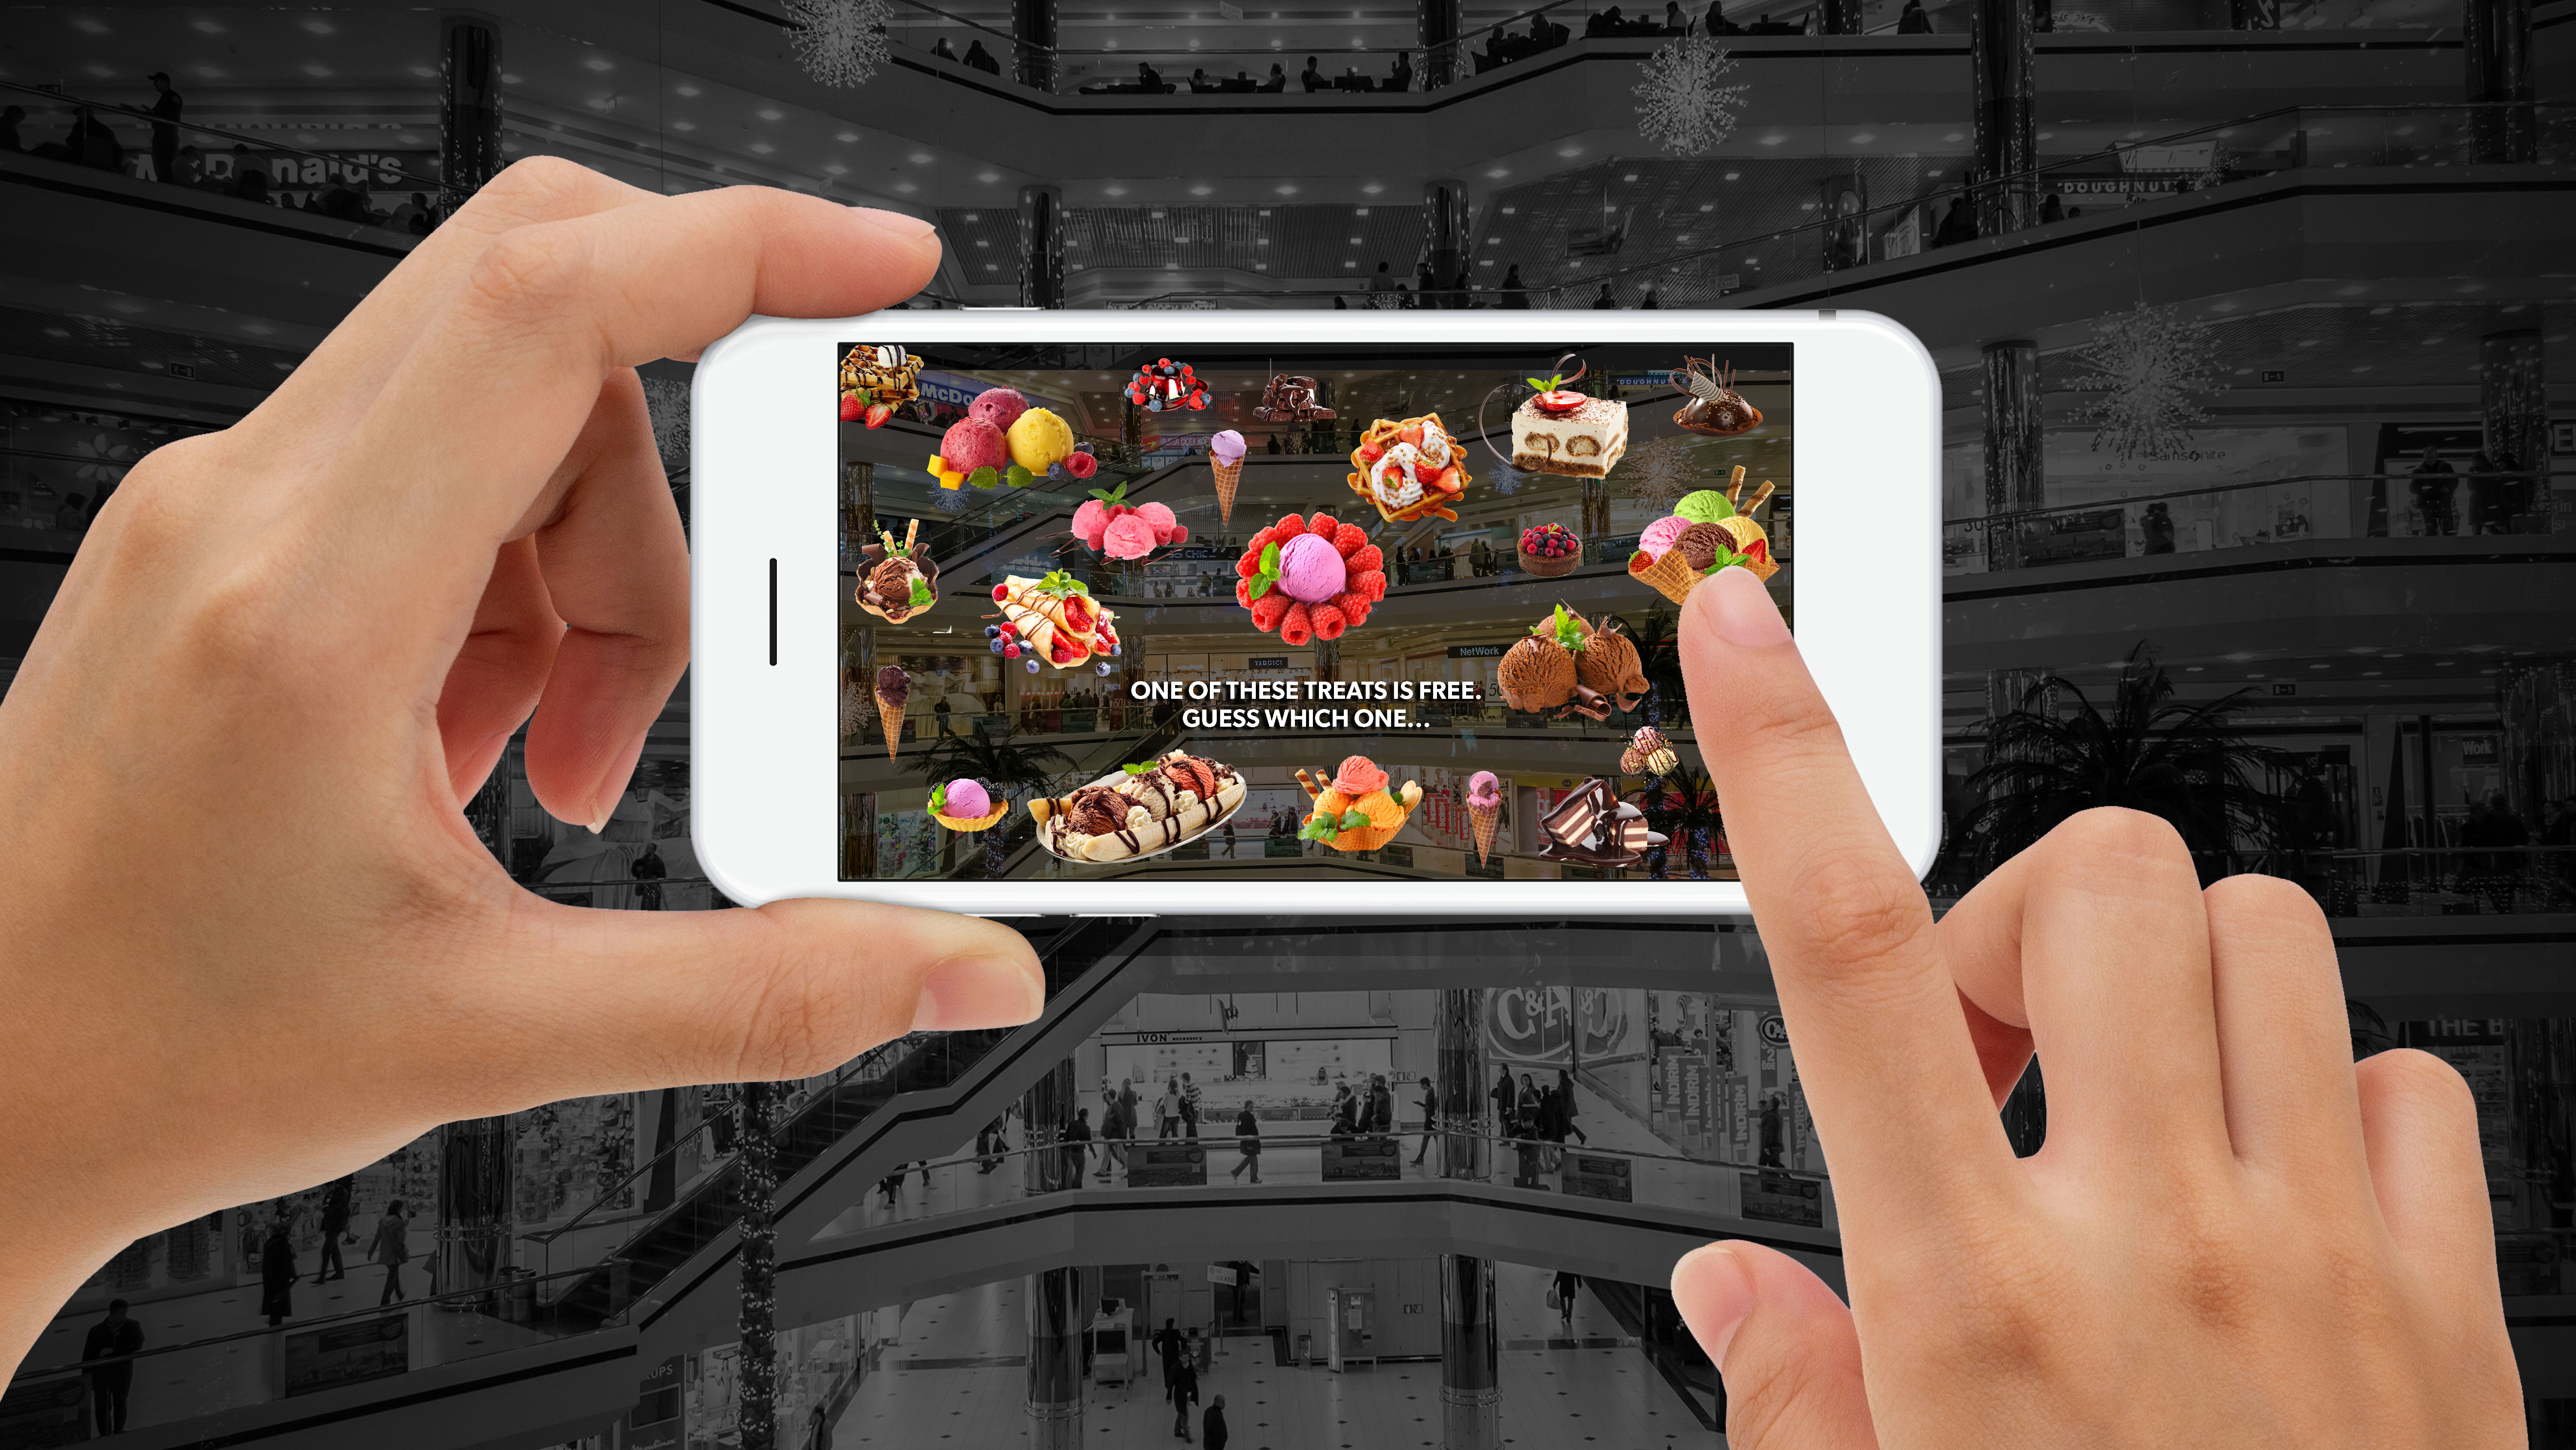 Sizzle Delivers Augmented Reality Games